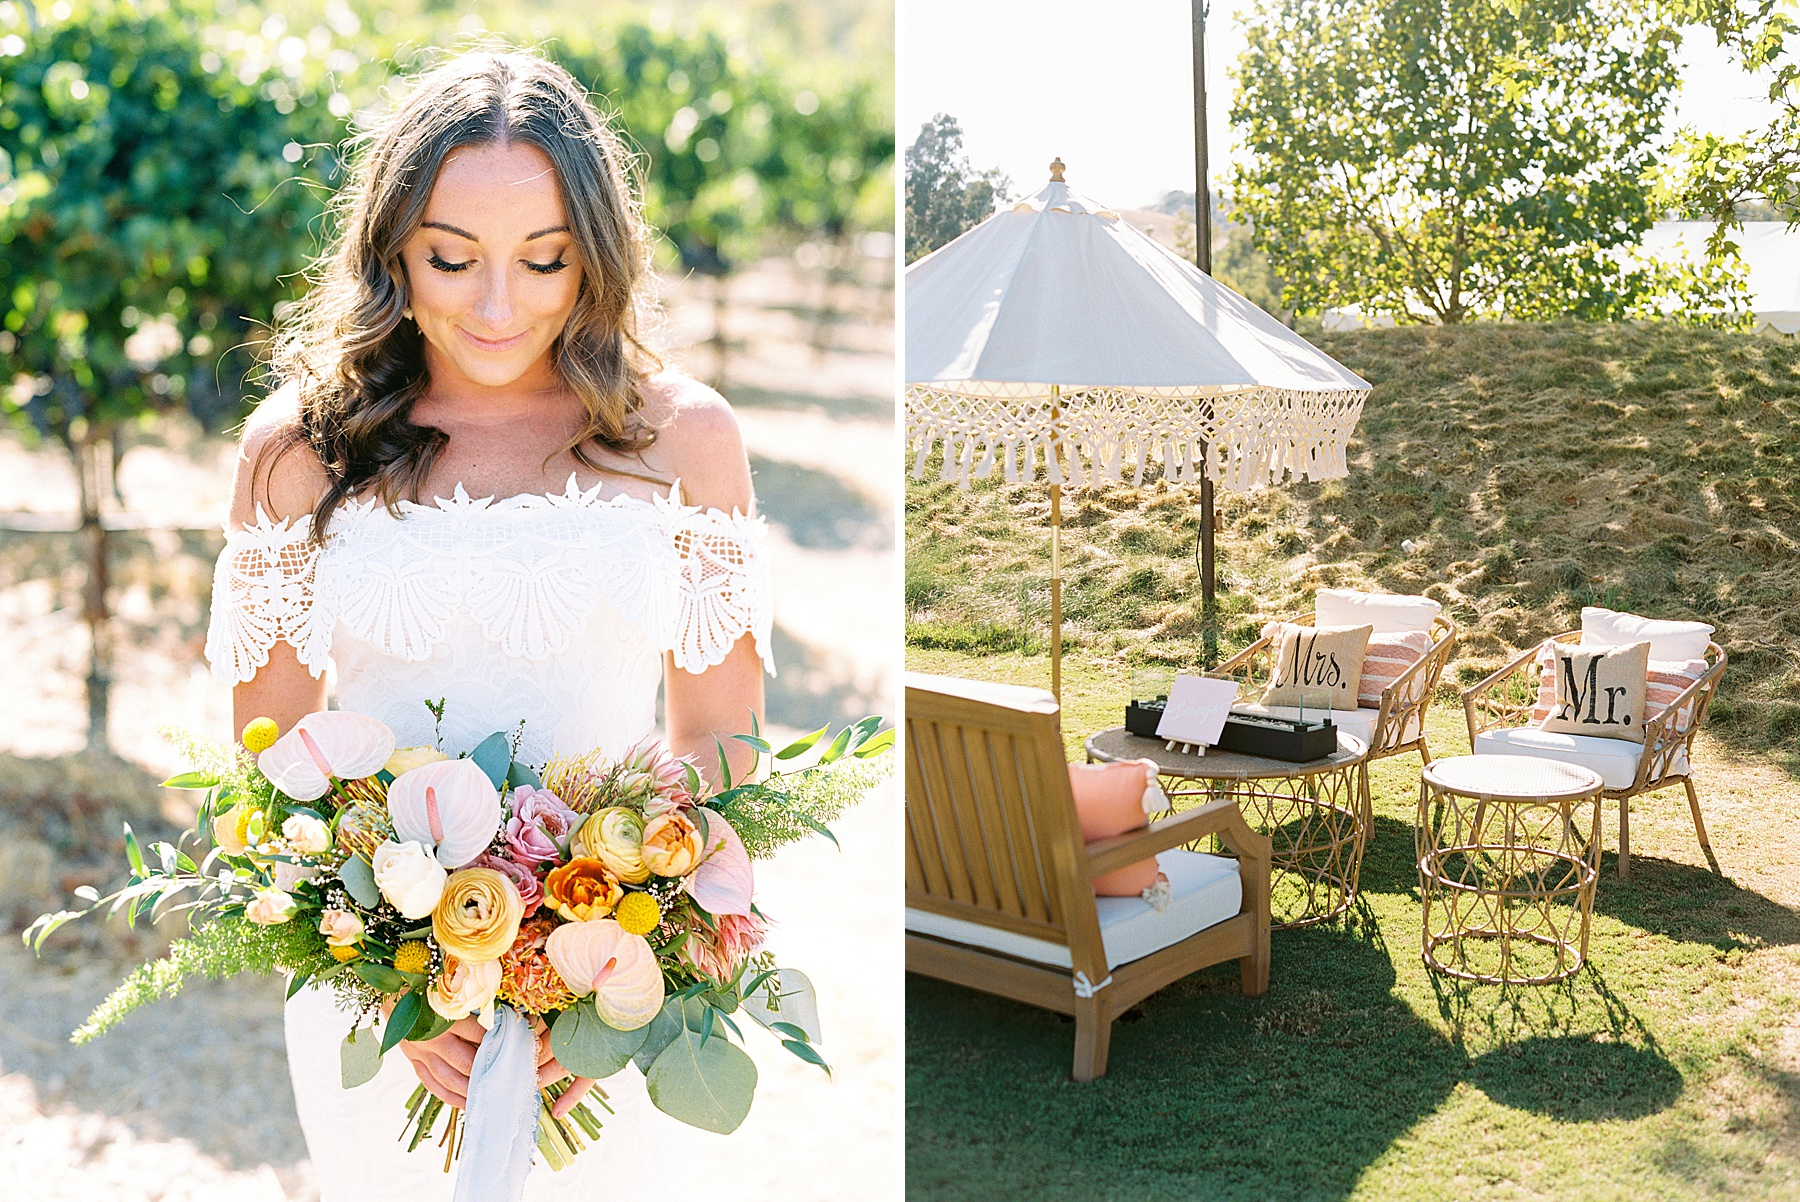 Wente Wedding with A Tropical Color Palette - Ashley & Mike - Featured on Inspired by This - Ashley Baumgartner_0001.jpg